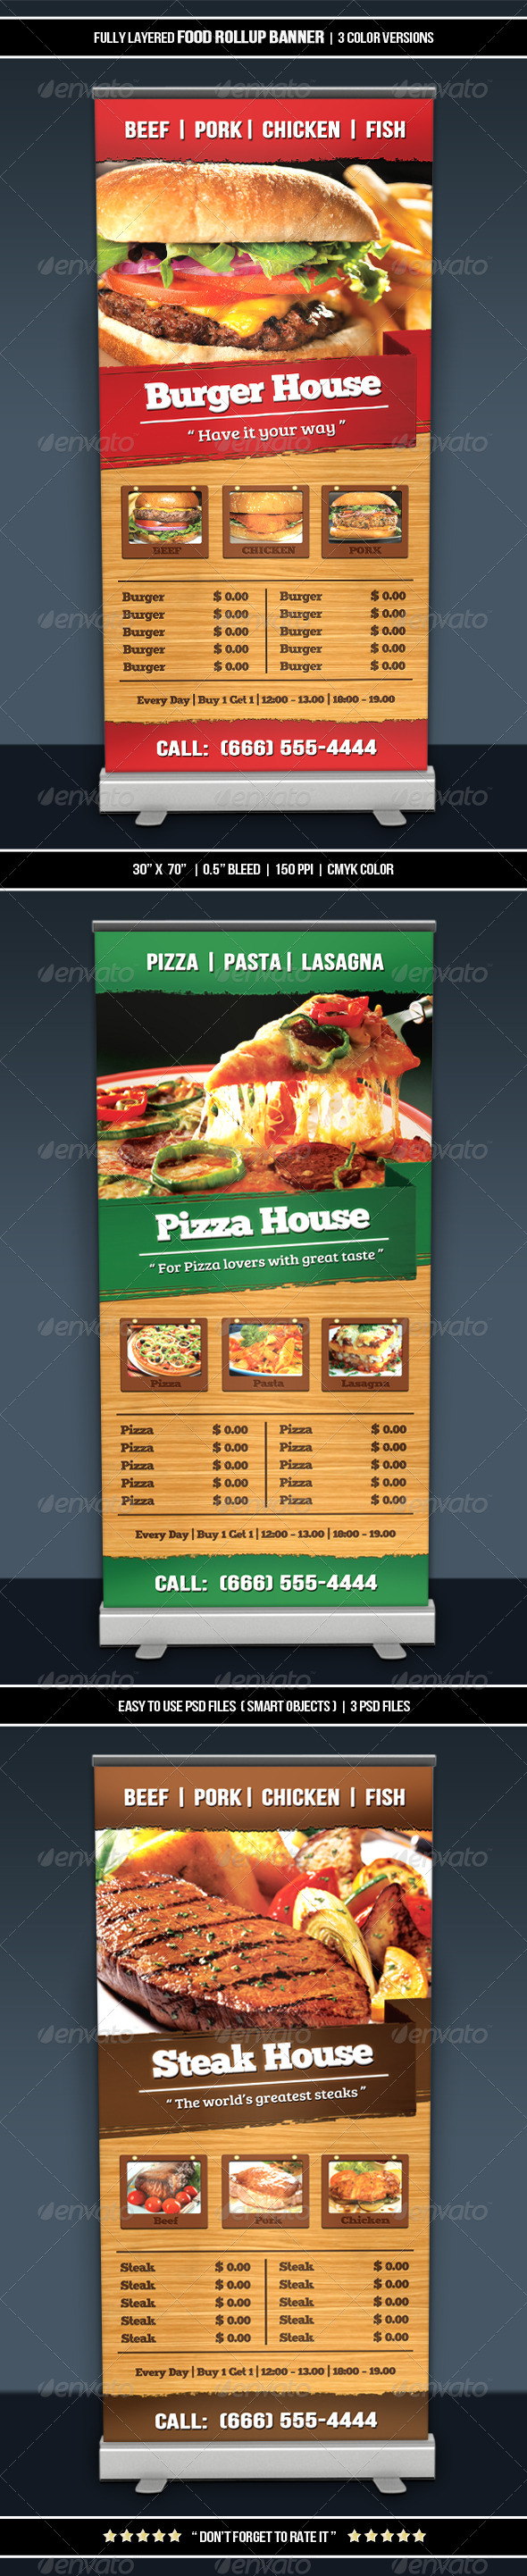 Food Roll-up Banner - Restaurant Flyers